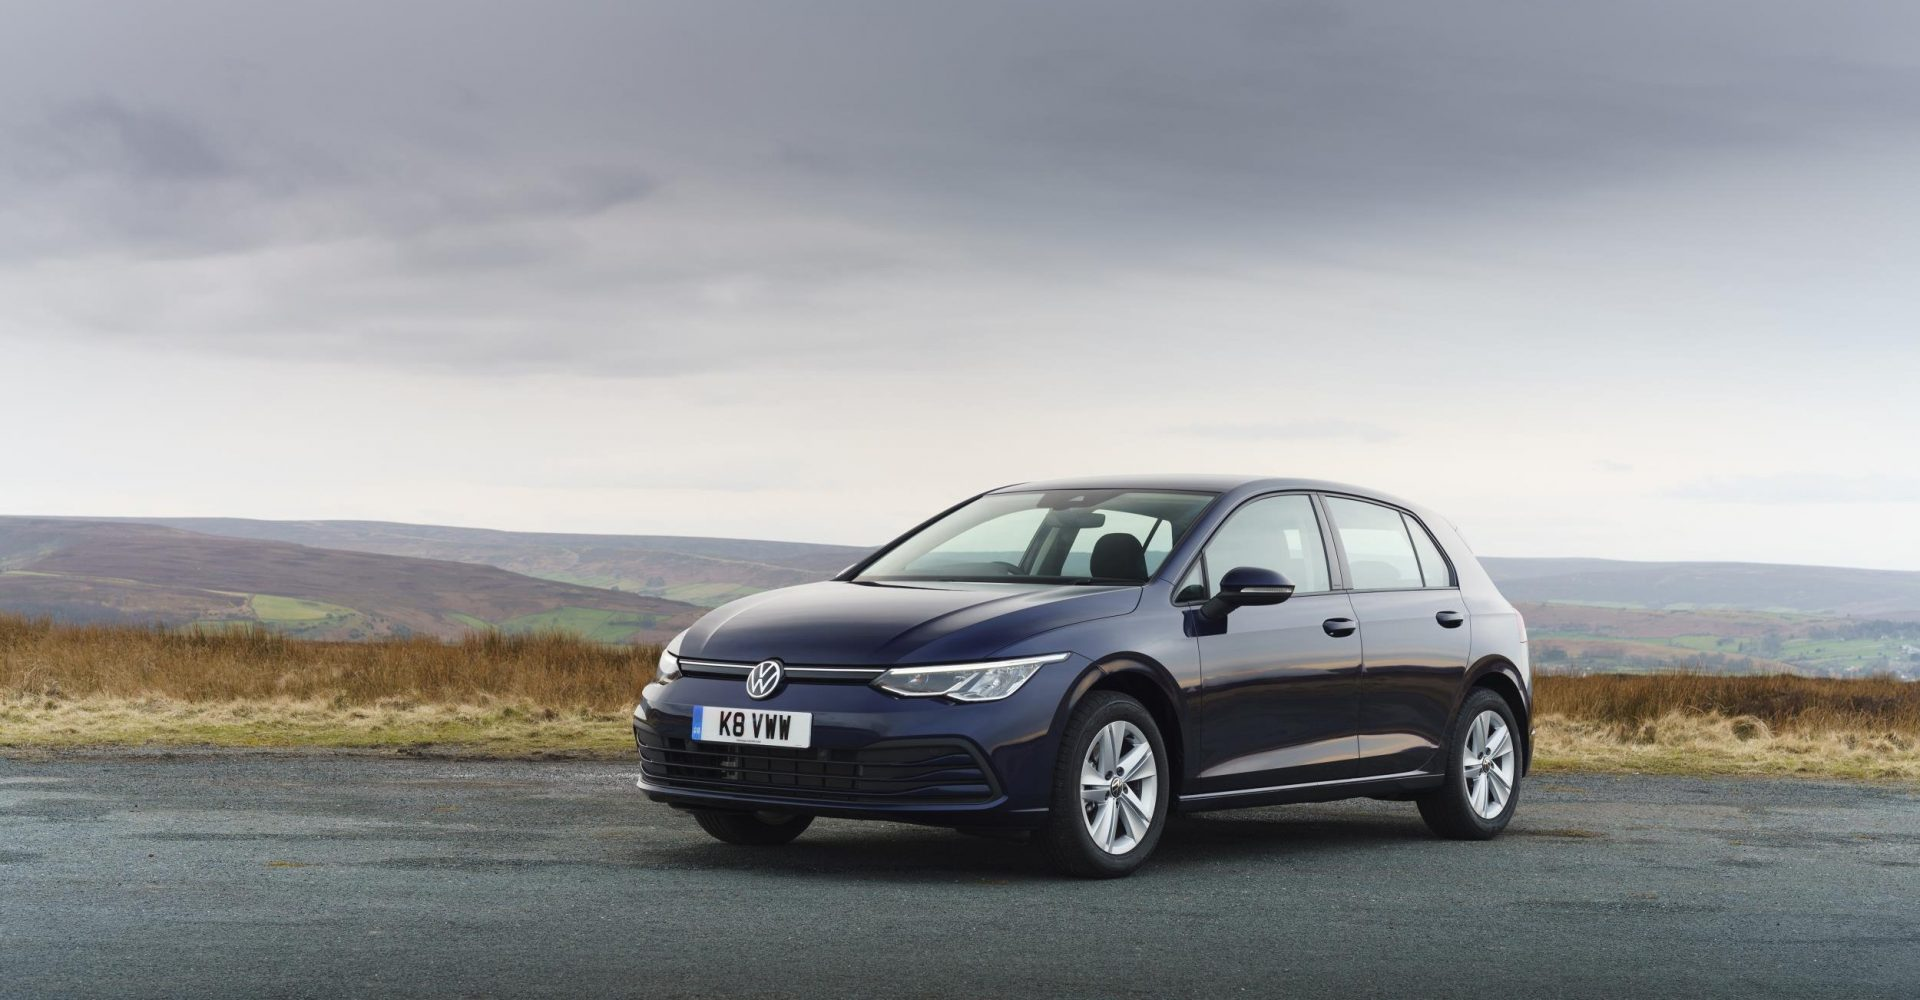 New entry-level Golf revealed with 1.0-litre petrol engine